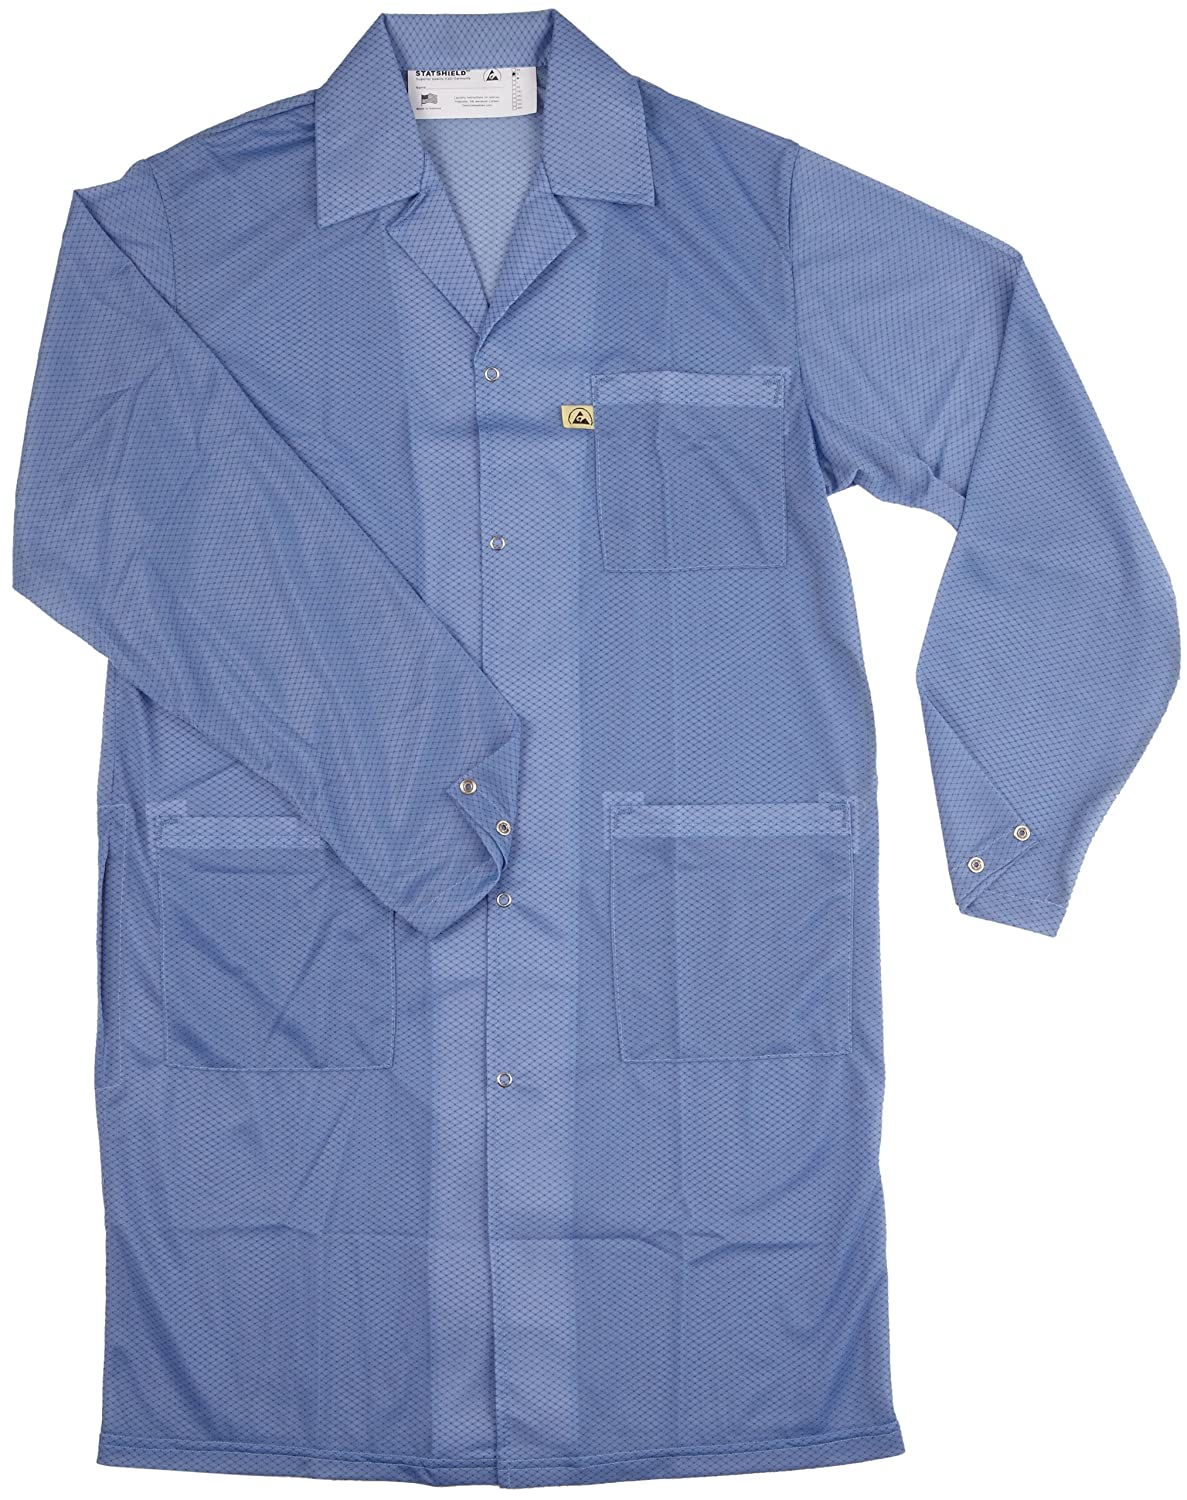 Blue 41-3//4 Length DESCO 73607 Polyester Smock Statshield Labcoat with Snaps 4X-Large